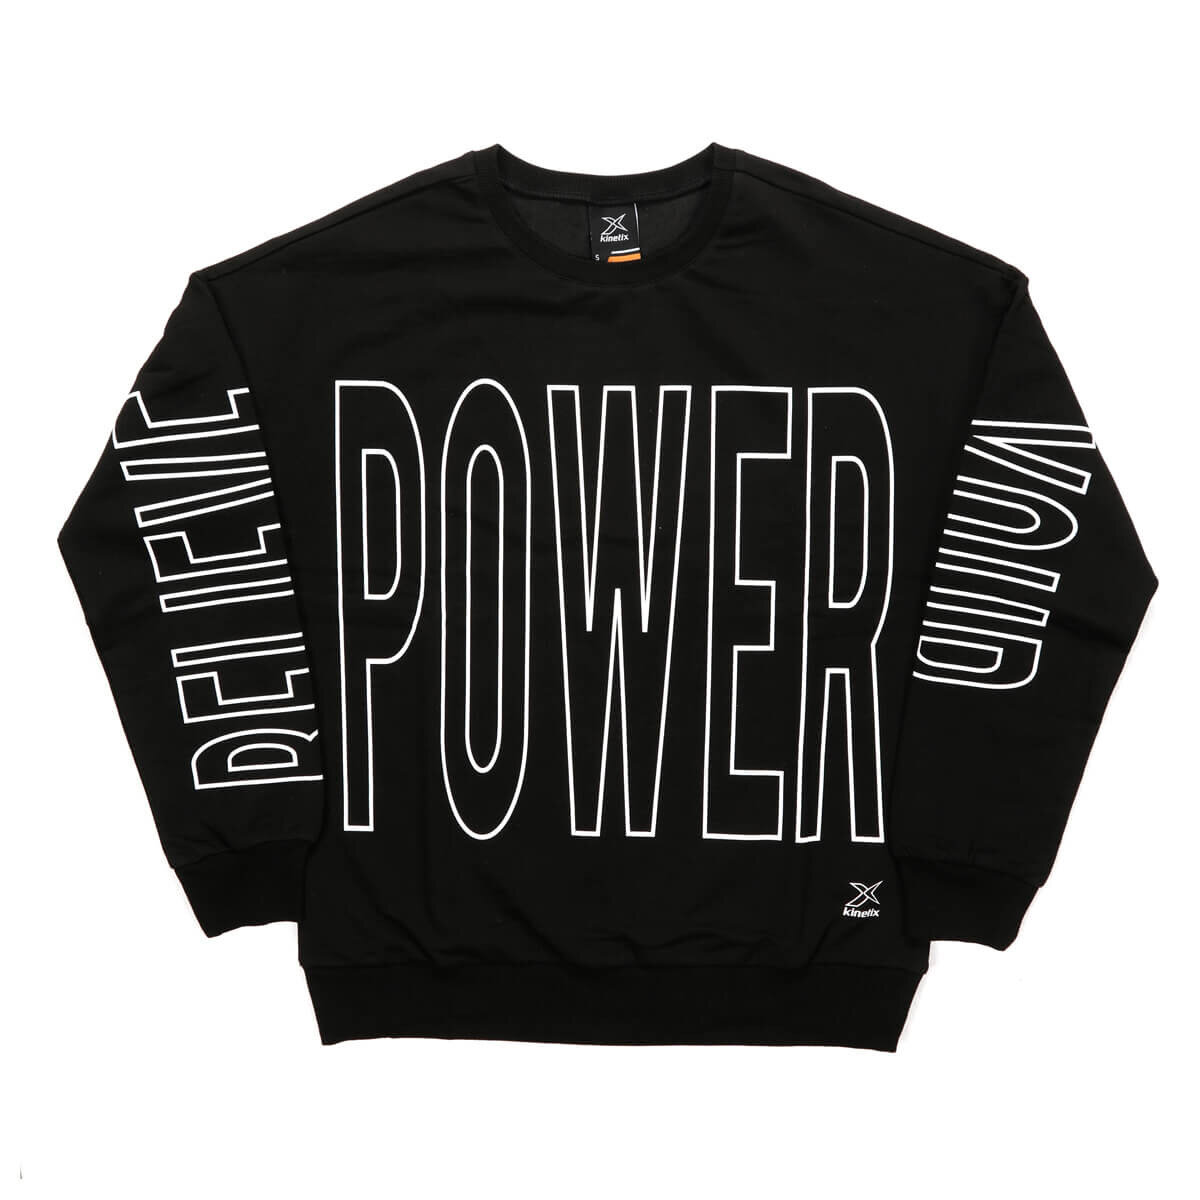 FLO CAREY SWEAT Black Women Sweatshirt KINETIX